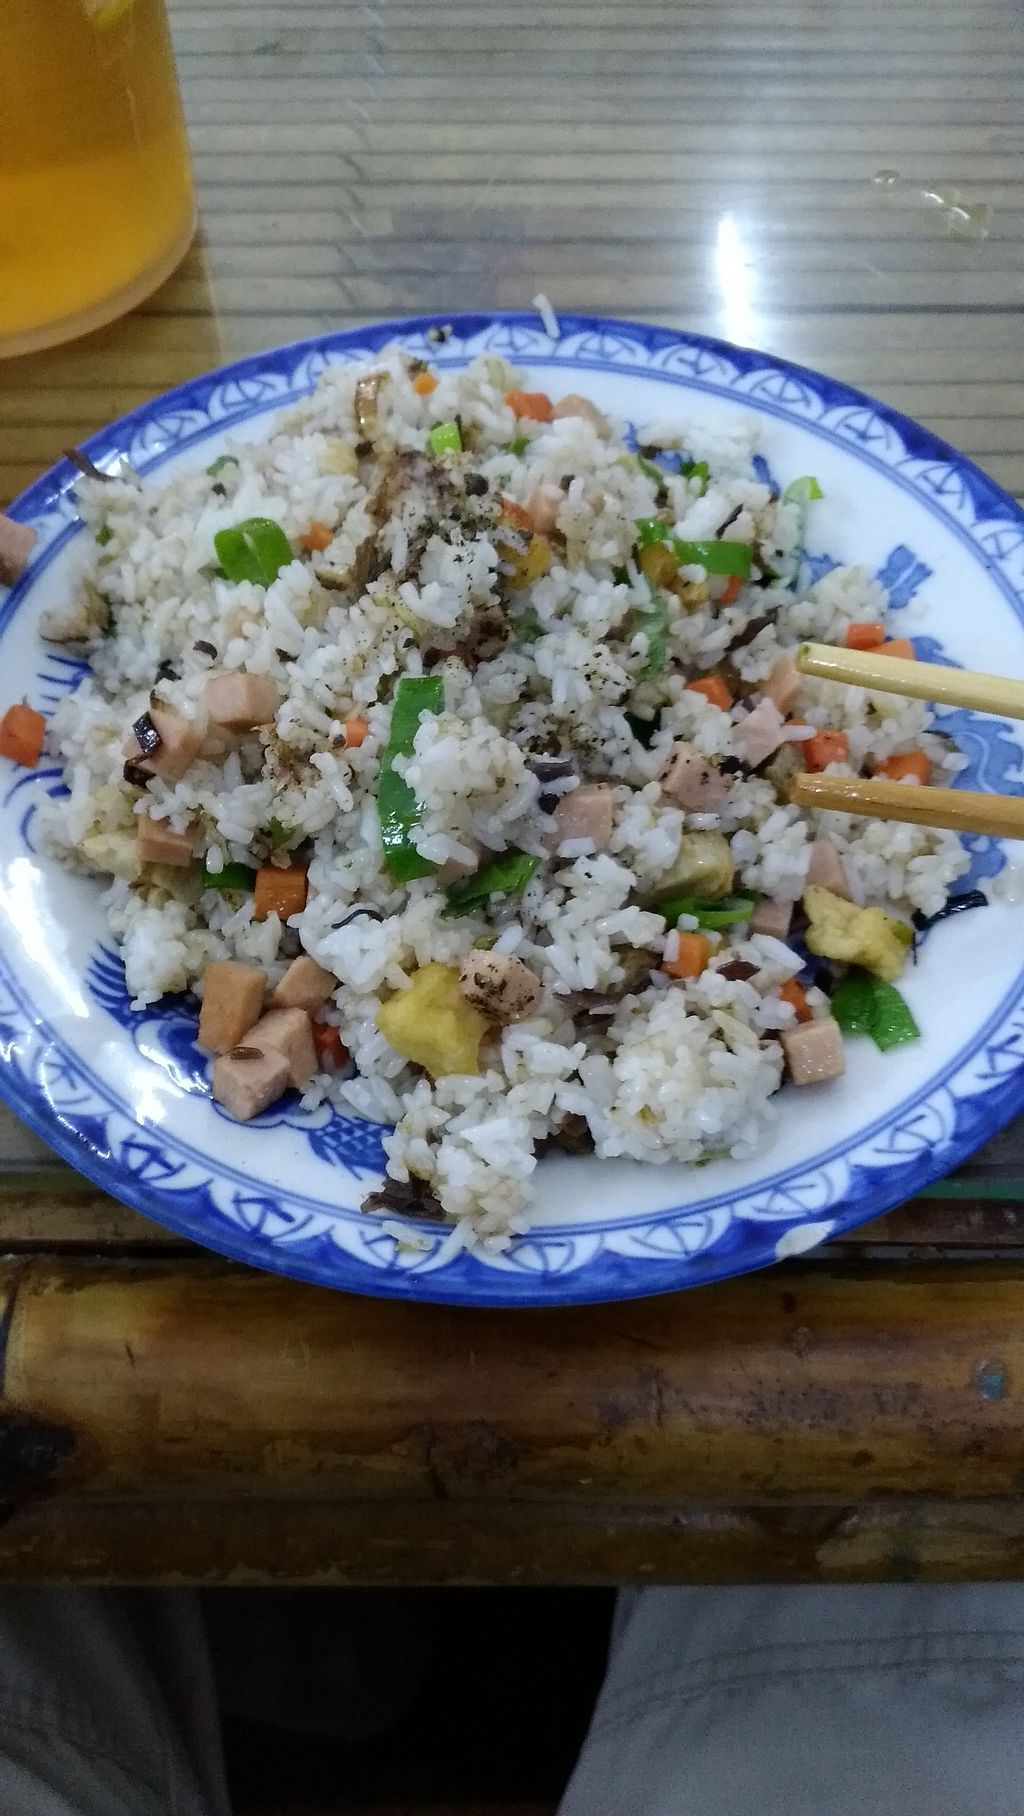 "Photo of Long Hoa  by <a href=""/members/profile/FuuMiyataniFrench"">FuuMiyataniFrench</a> <br/>Fried rice <br/> February 1, 2018  - <a href='/contact/abuse/image/33689/353568'>Report</a>"